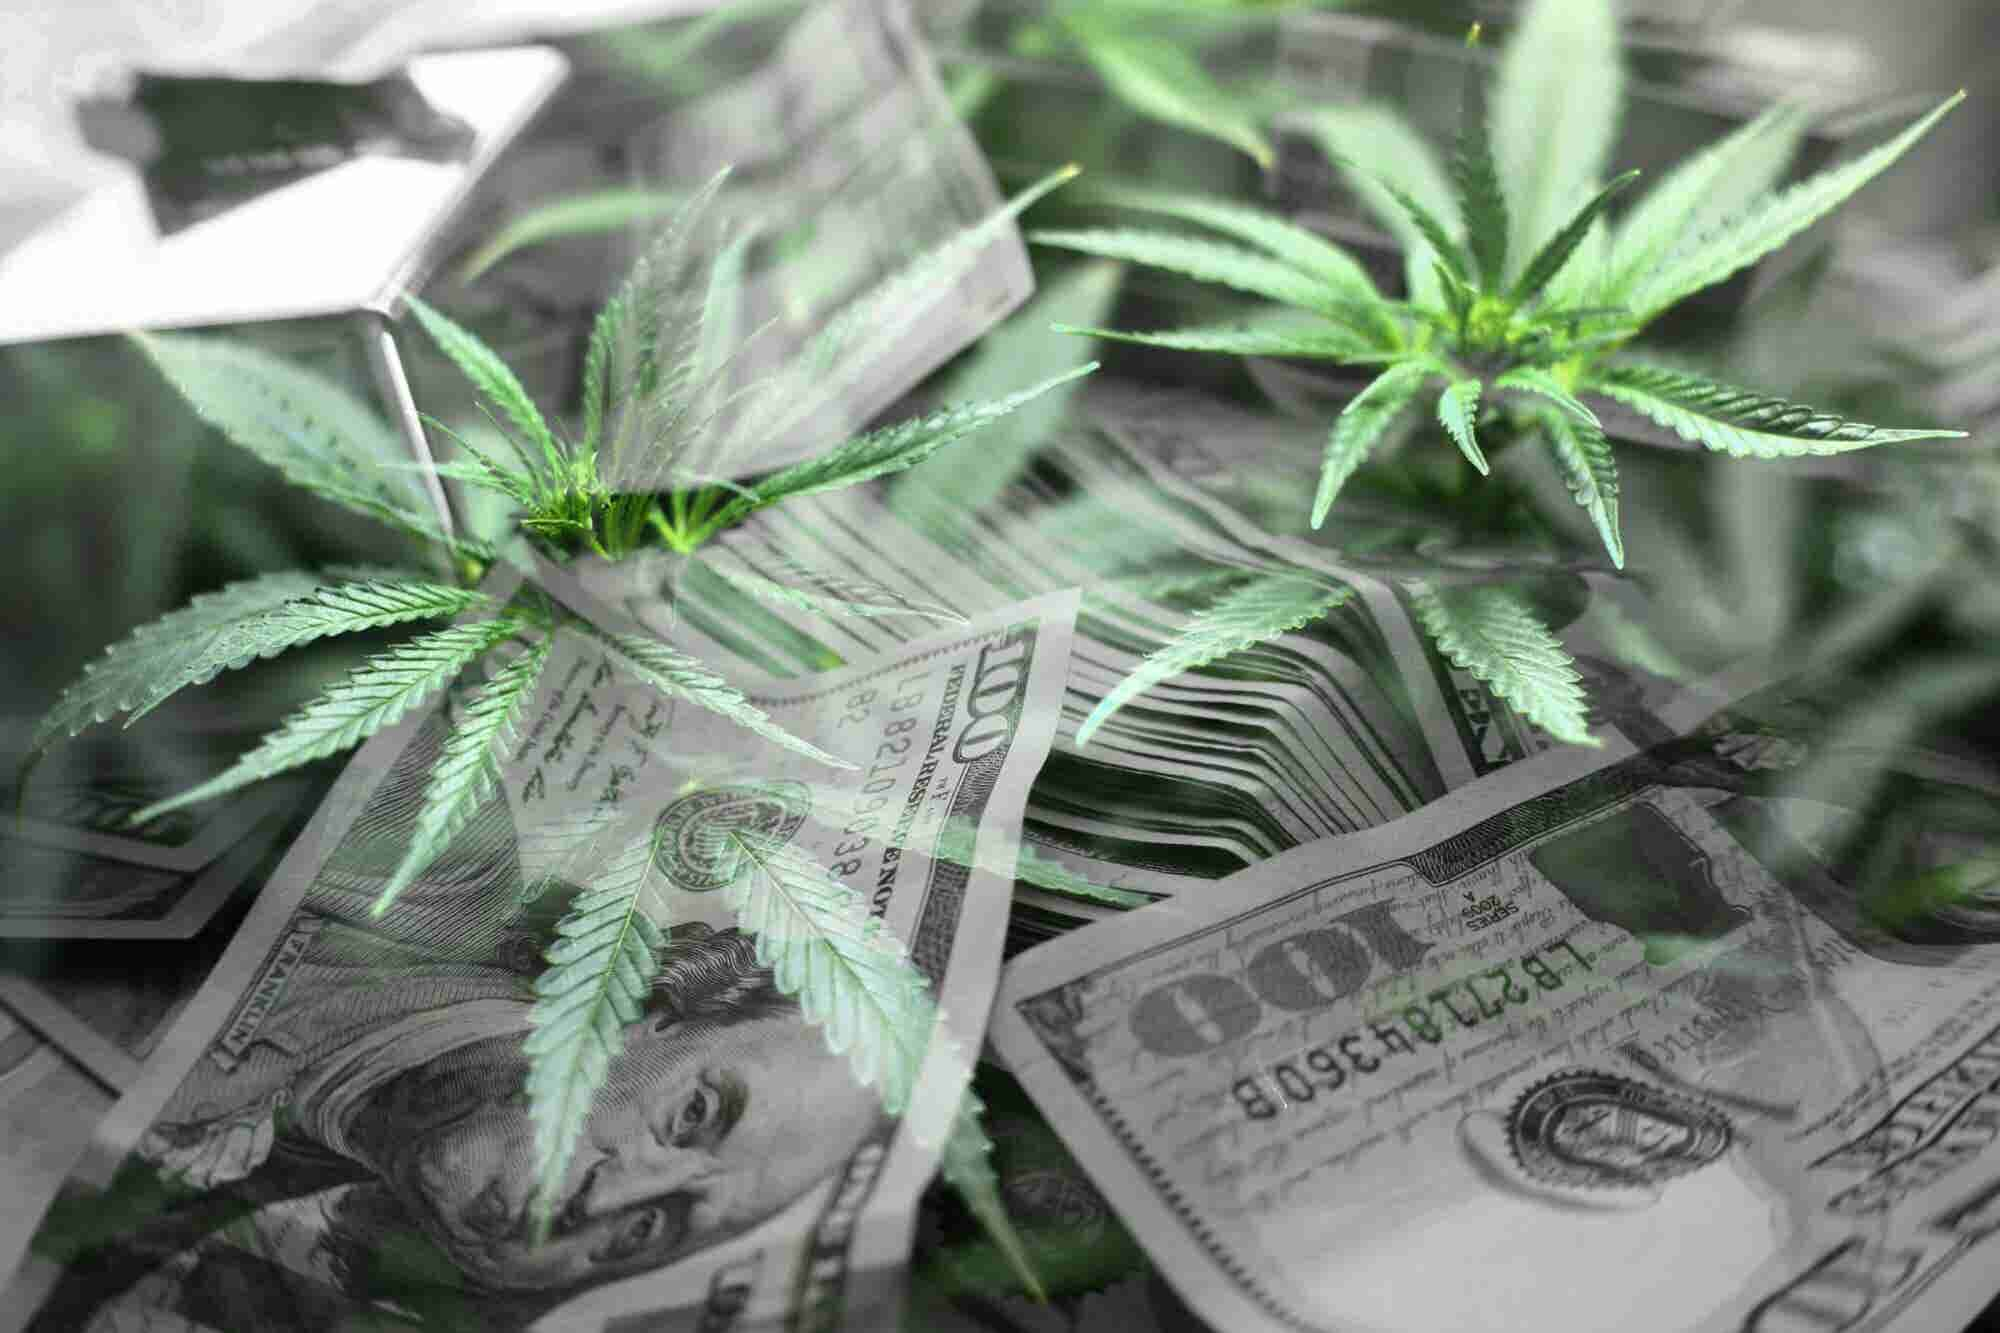 With Democrats in Control, House Looks at Ending Cannabis Banking Restrictions